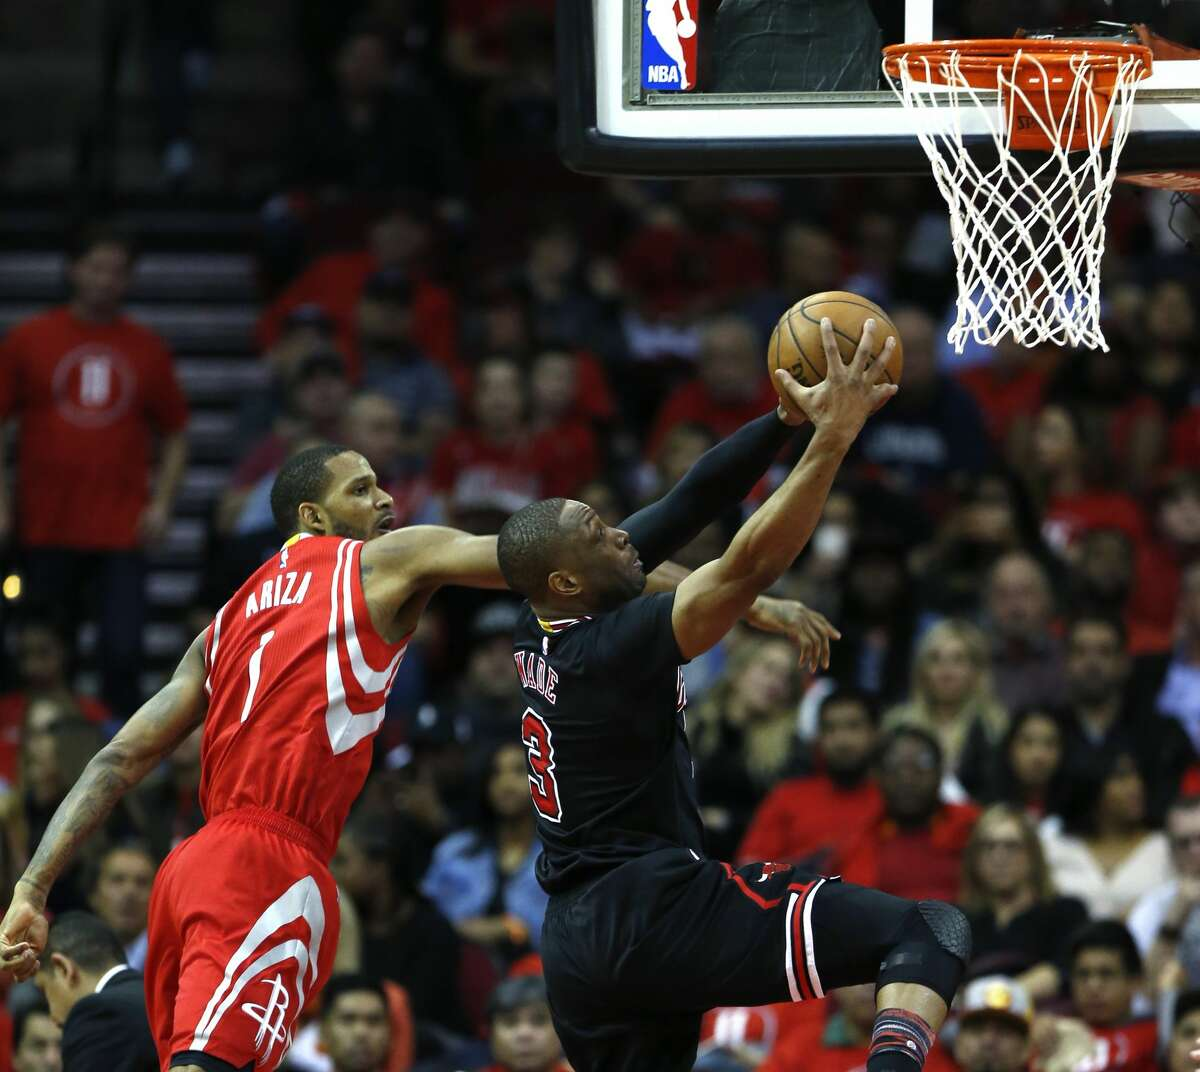 Houston Rockets forward Trevor Ariza (1) defends a drive to the basket by Chicago Bulls guard Dwyane Wade (3) during the fourth quarter of an NBA basketball game at Toyota Center on Friday, Feb. 3, 2017, in Houston. ( Brett Coomer / Houston Chronicle )